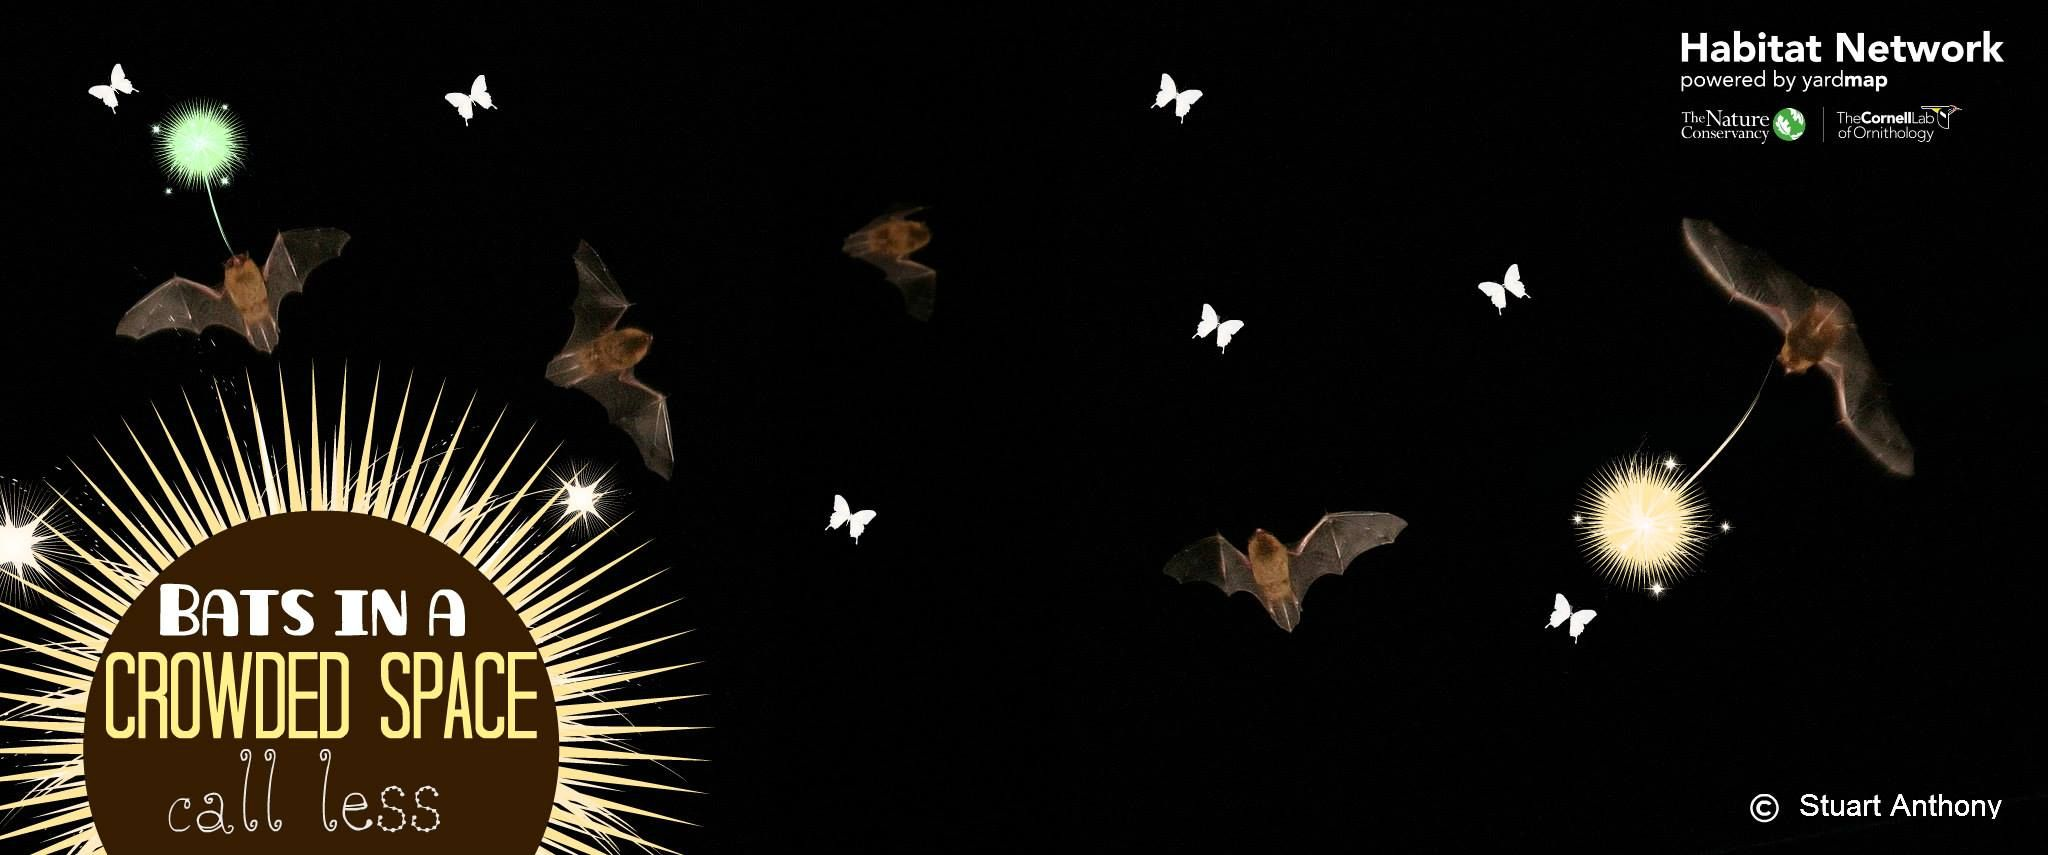 """New research sheds light on how bats use echolocation for hunting and maneuvering in the dark, sometimes crowded spaces. When bats hear another bat calling, they minimize their own echolocation, researchers coined this behavior """"mutual suppression"""". As a way to support bats in your community, consider installing a bat house: http://content.yardmap.org/learn/habitat-feature-bat-houses/."""